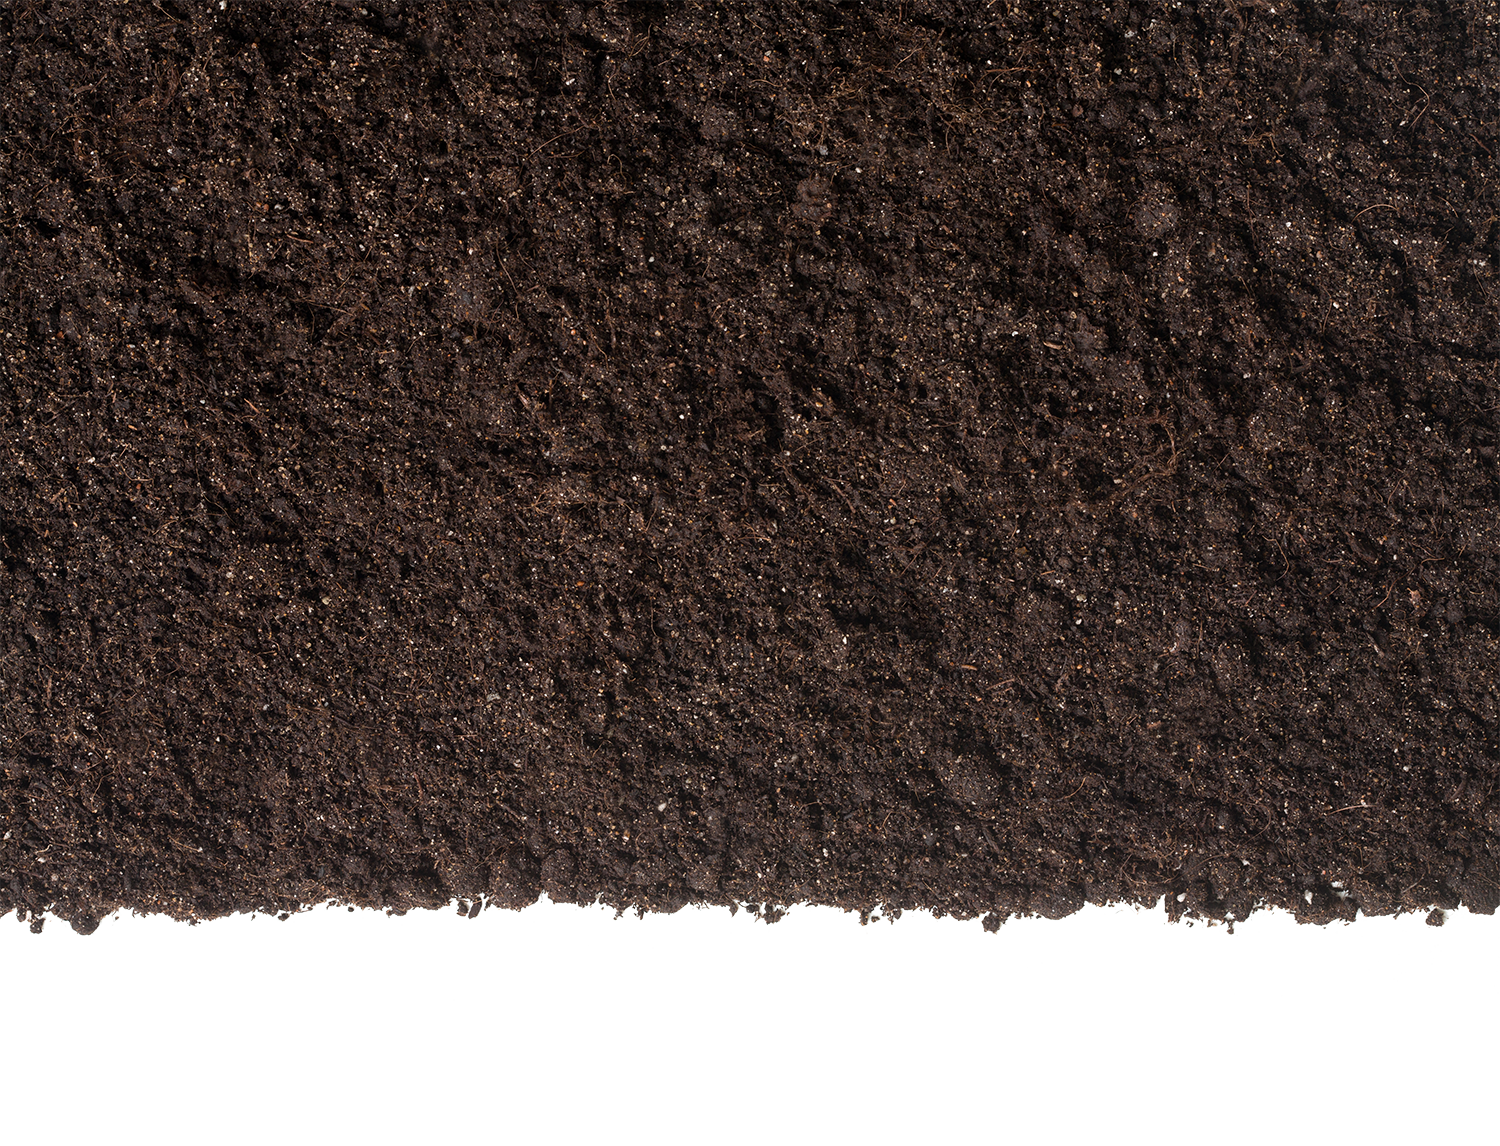 Dirt png. Partners foodshed alliance dirtpng